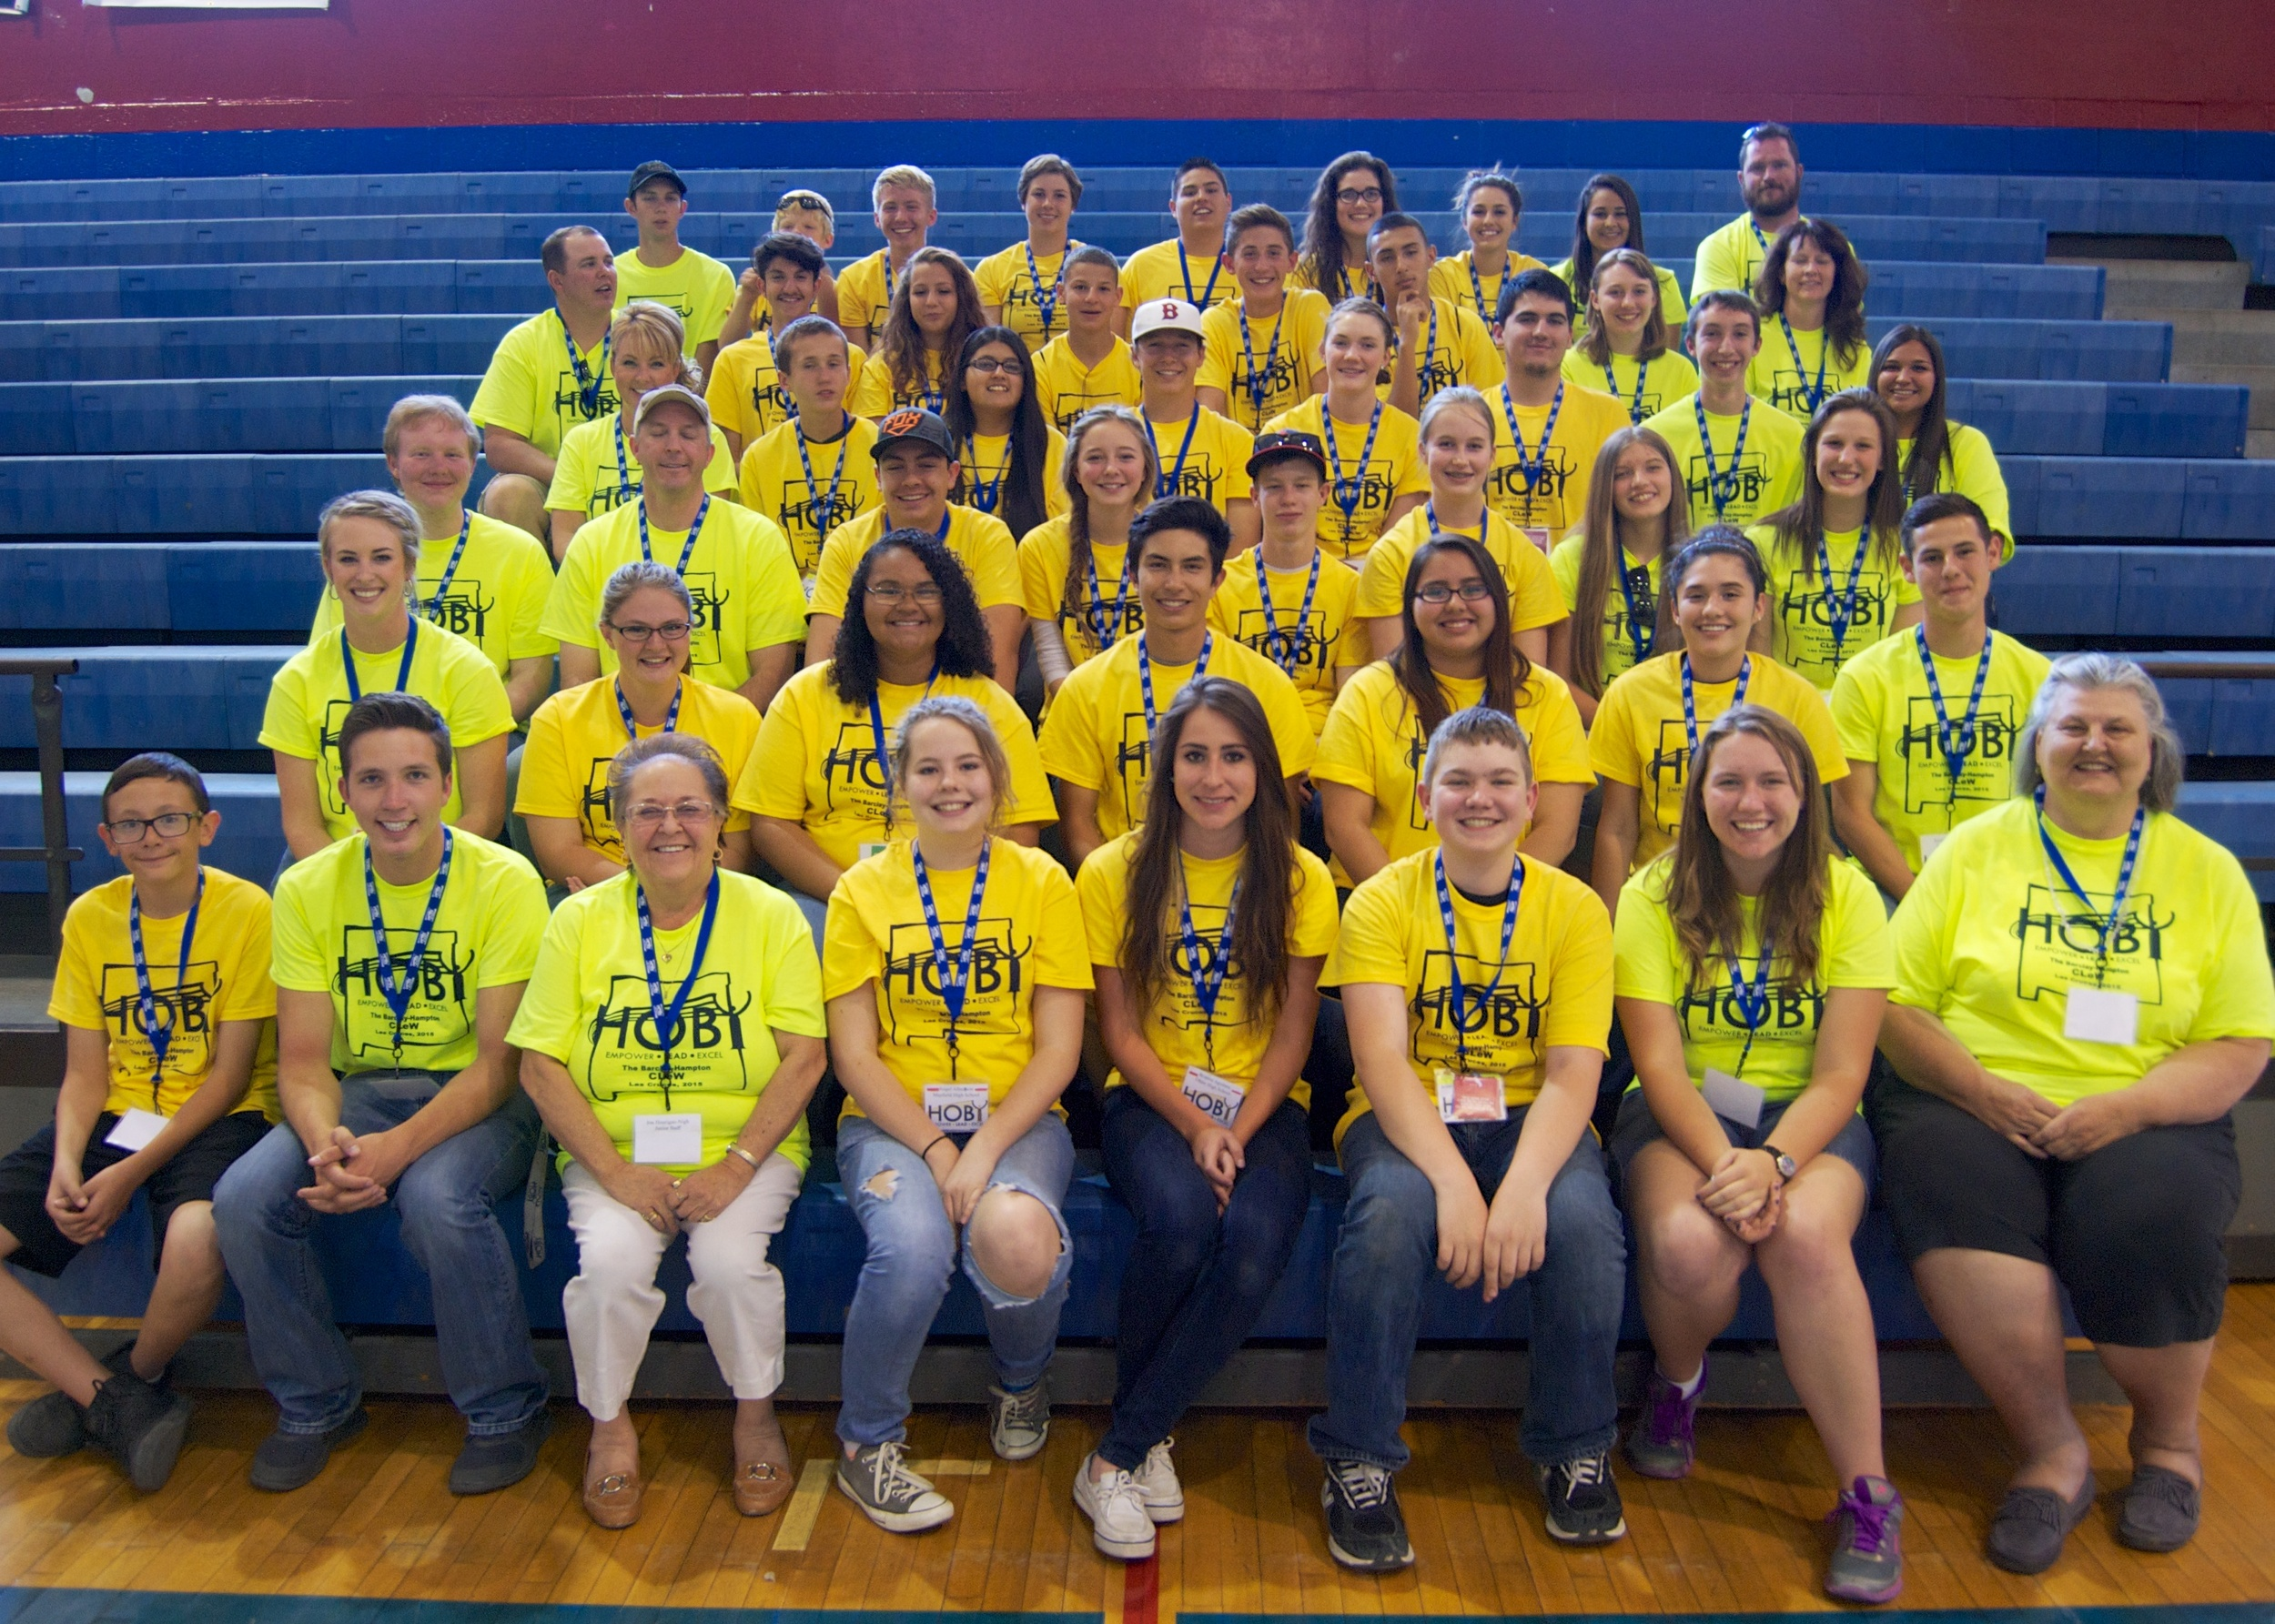 HOBY_NM_CLeW_Group Photo.jpg